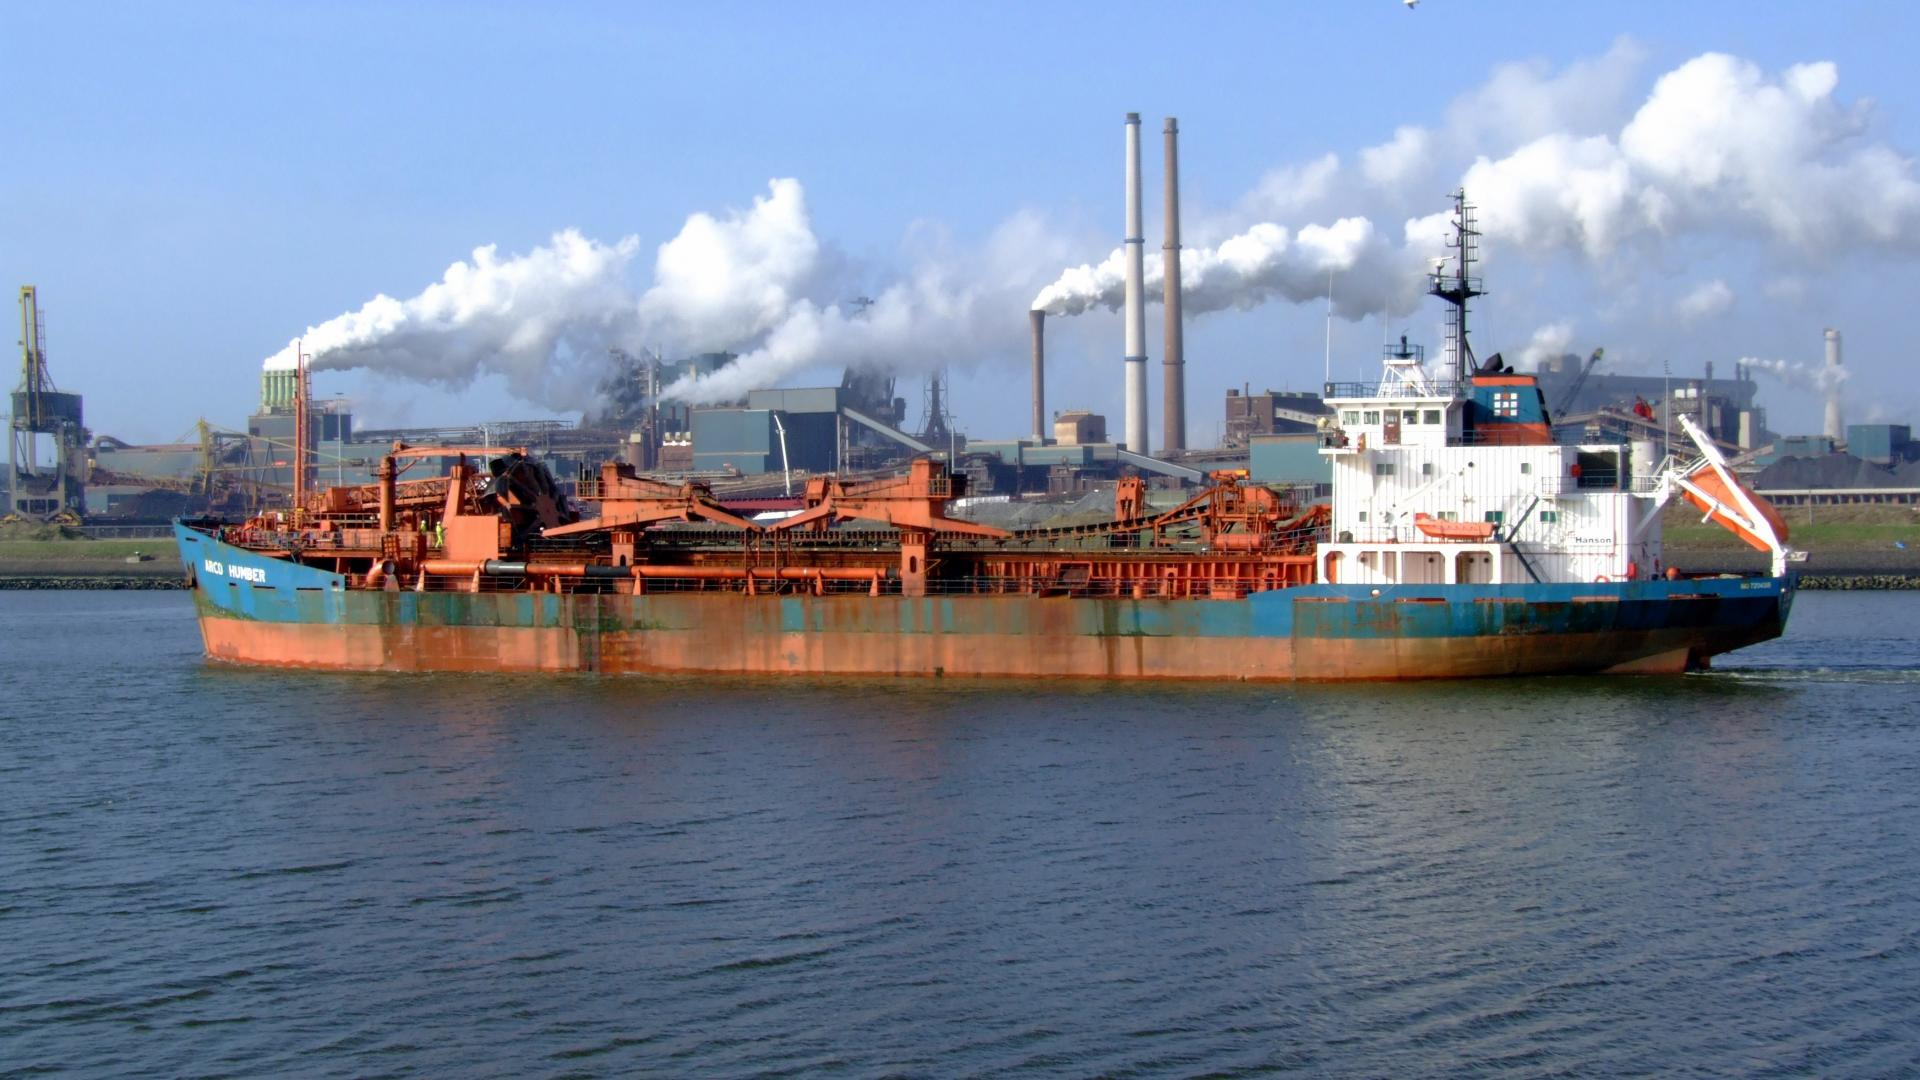 Container ship factory plume